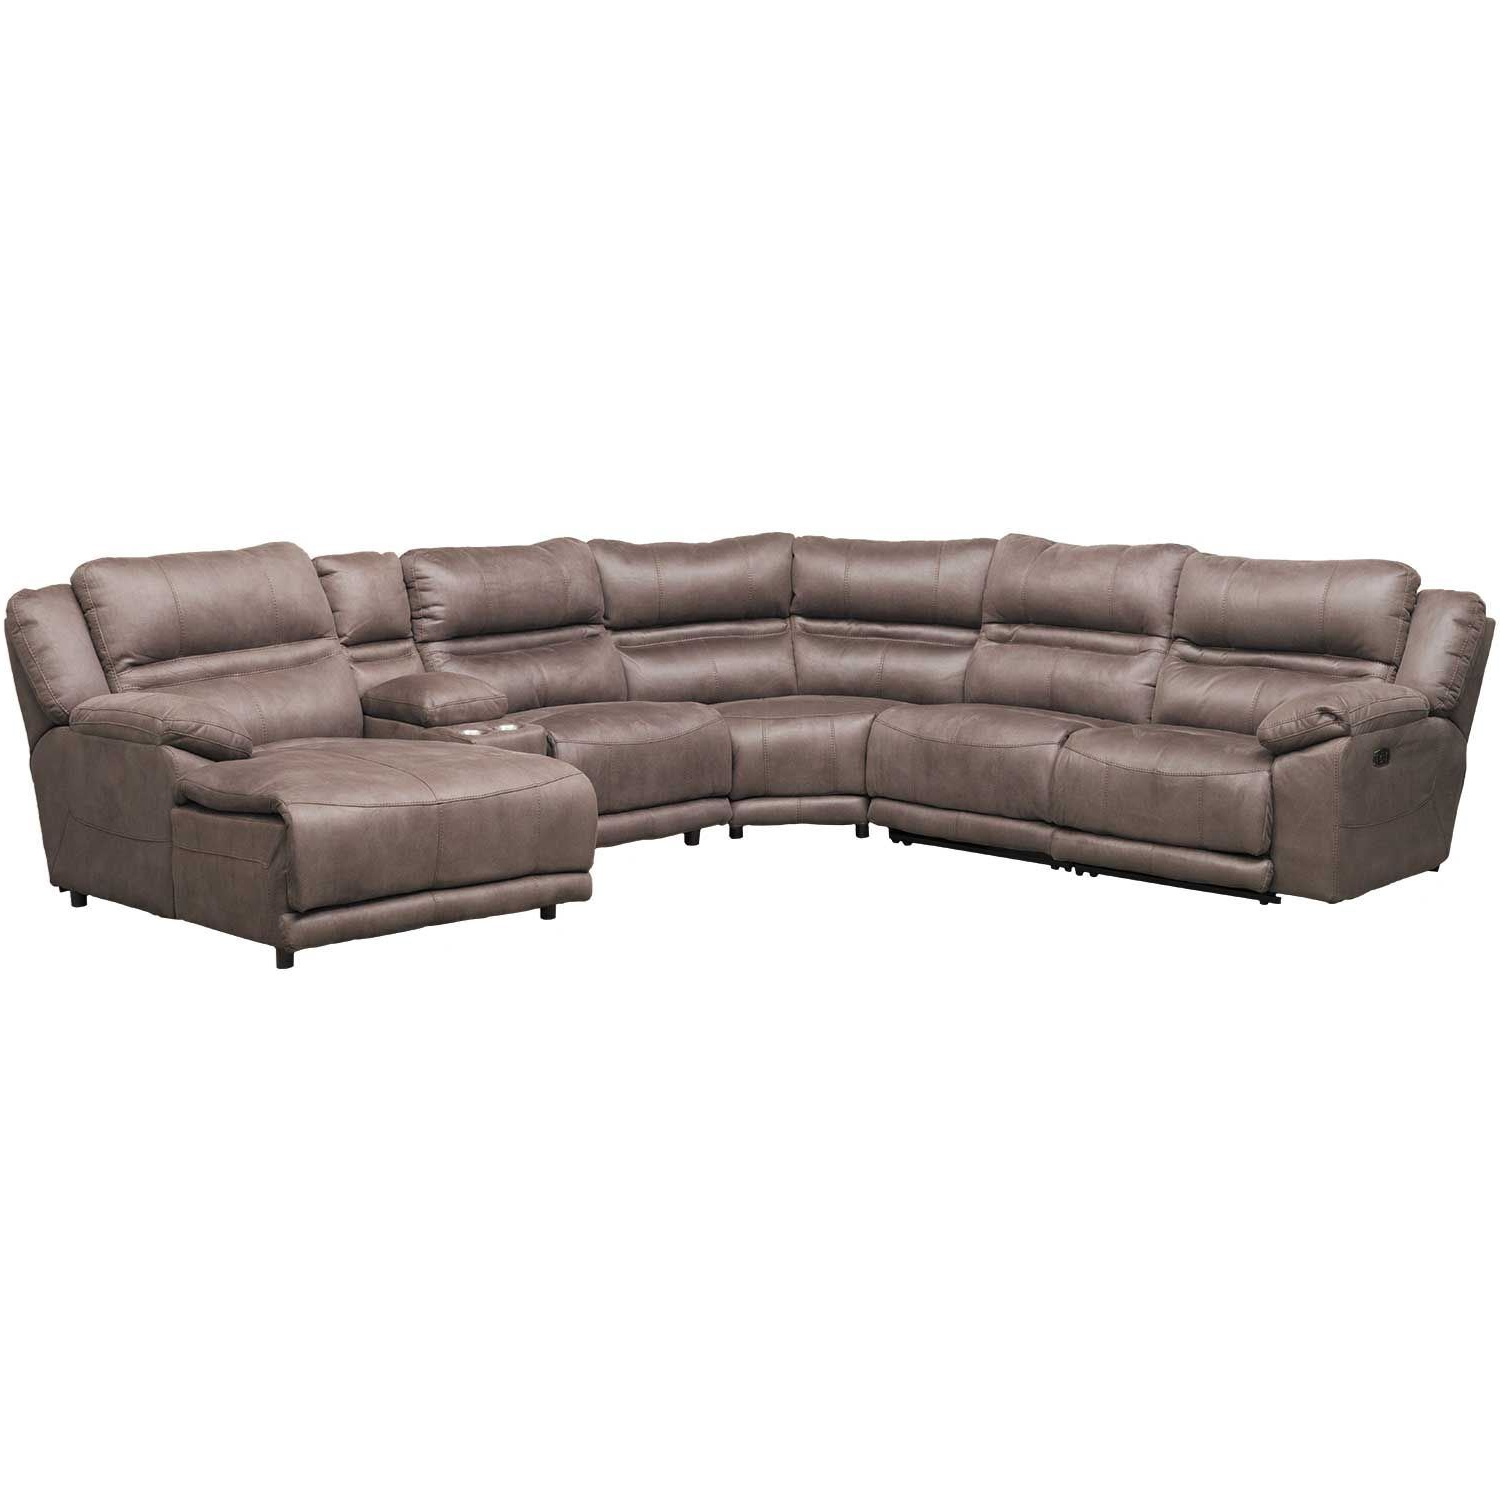 Jackson 6 Piece Power Reclining Sectionals With  Sleeper For Widely Used Braxton 6 Piece Power Reclining Sectional With Adjustable Headrest (View 4 of 20)